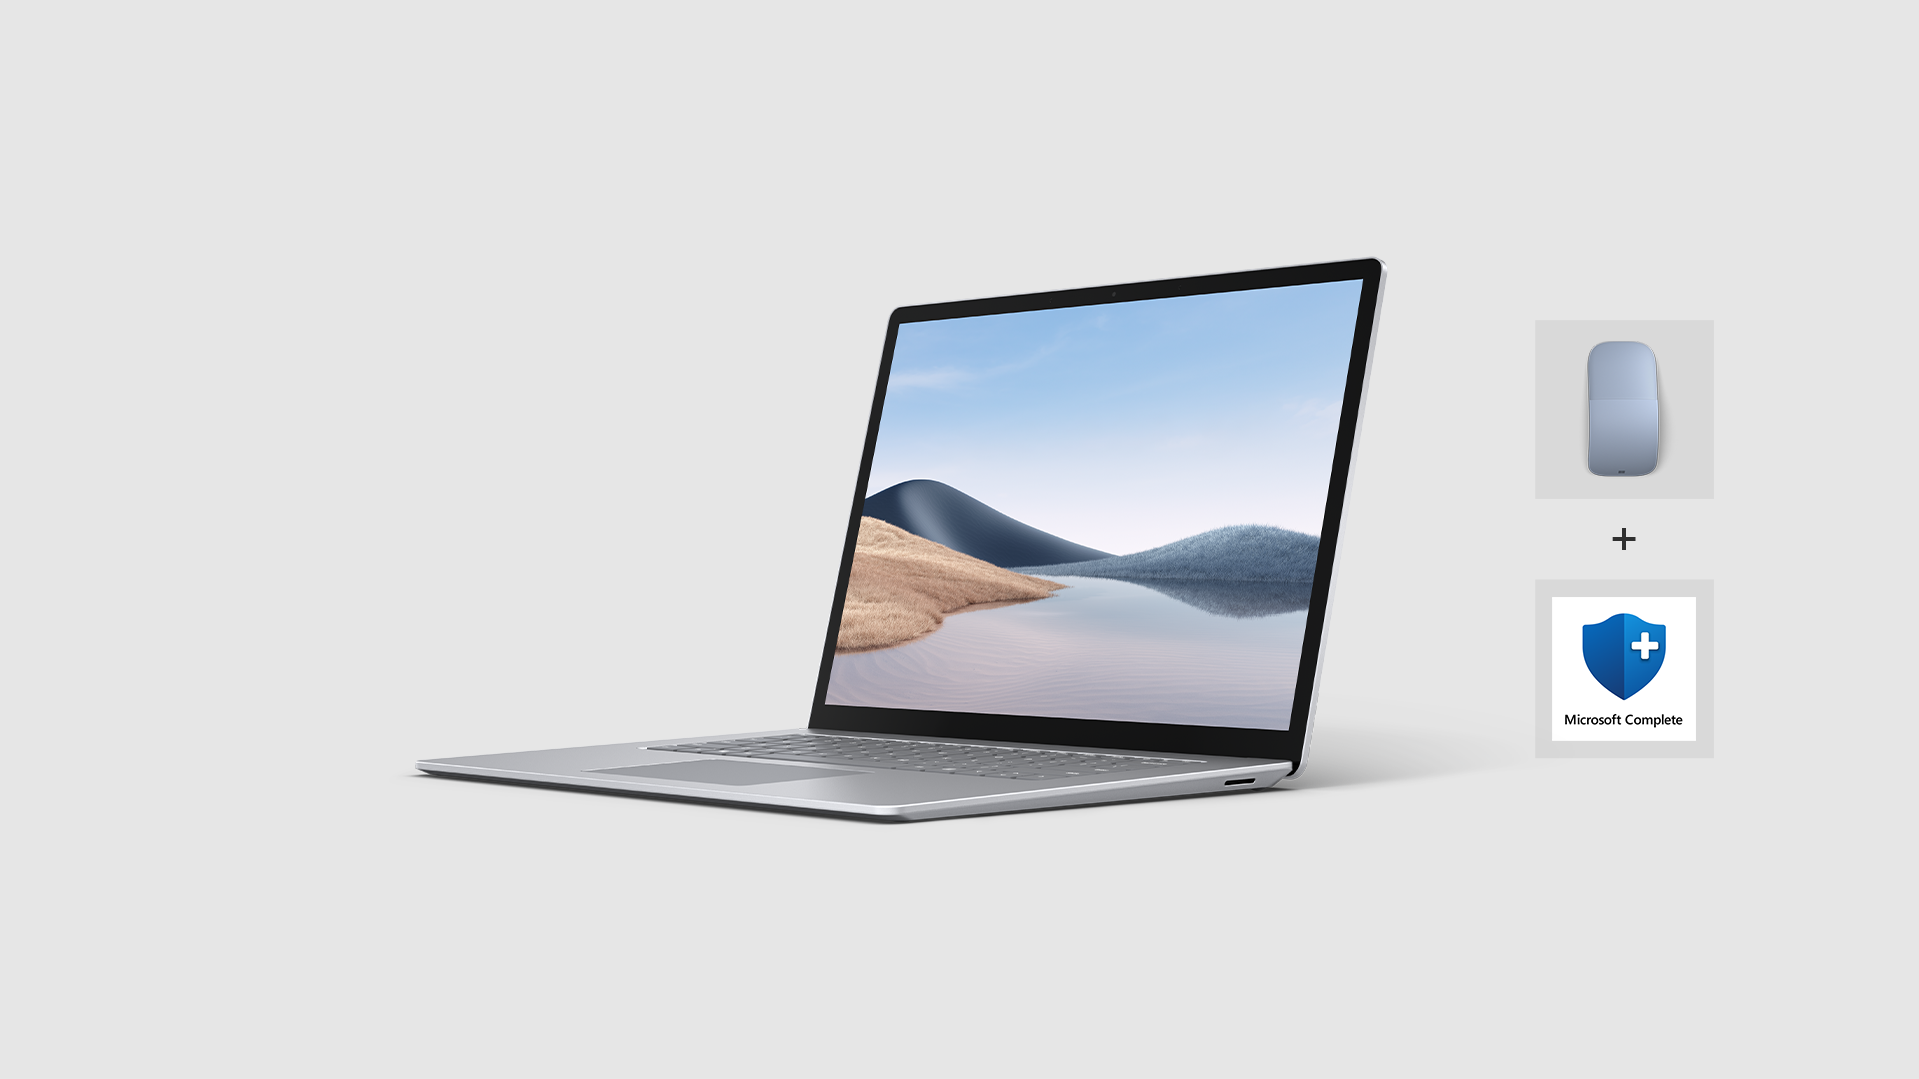 Surface Laptop 4 for Business device and graphical icons for Microsoft 365 and Microsoft Complete Protection Plan.